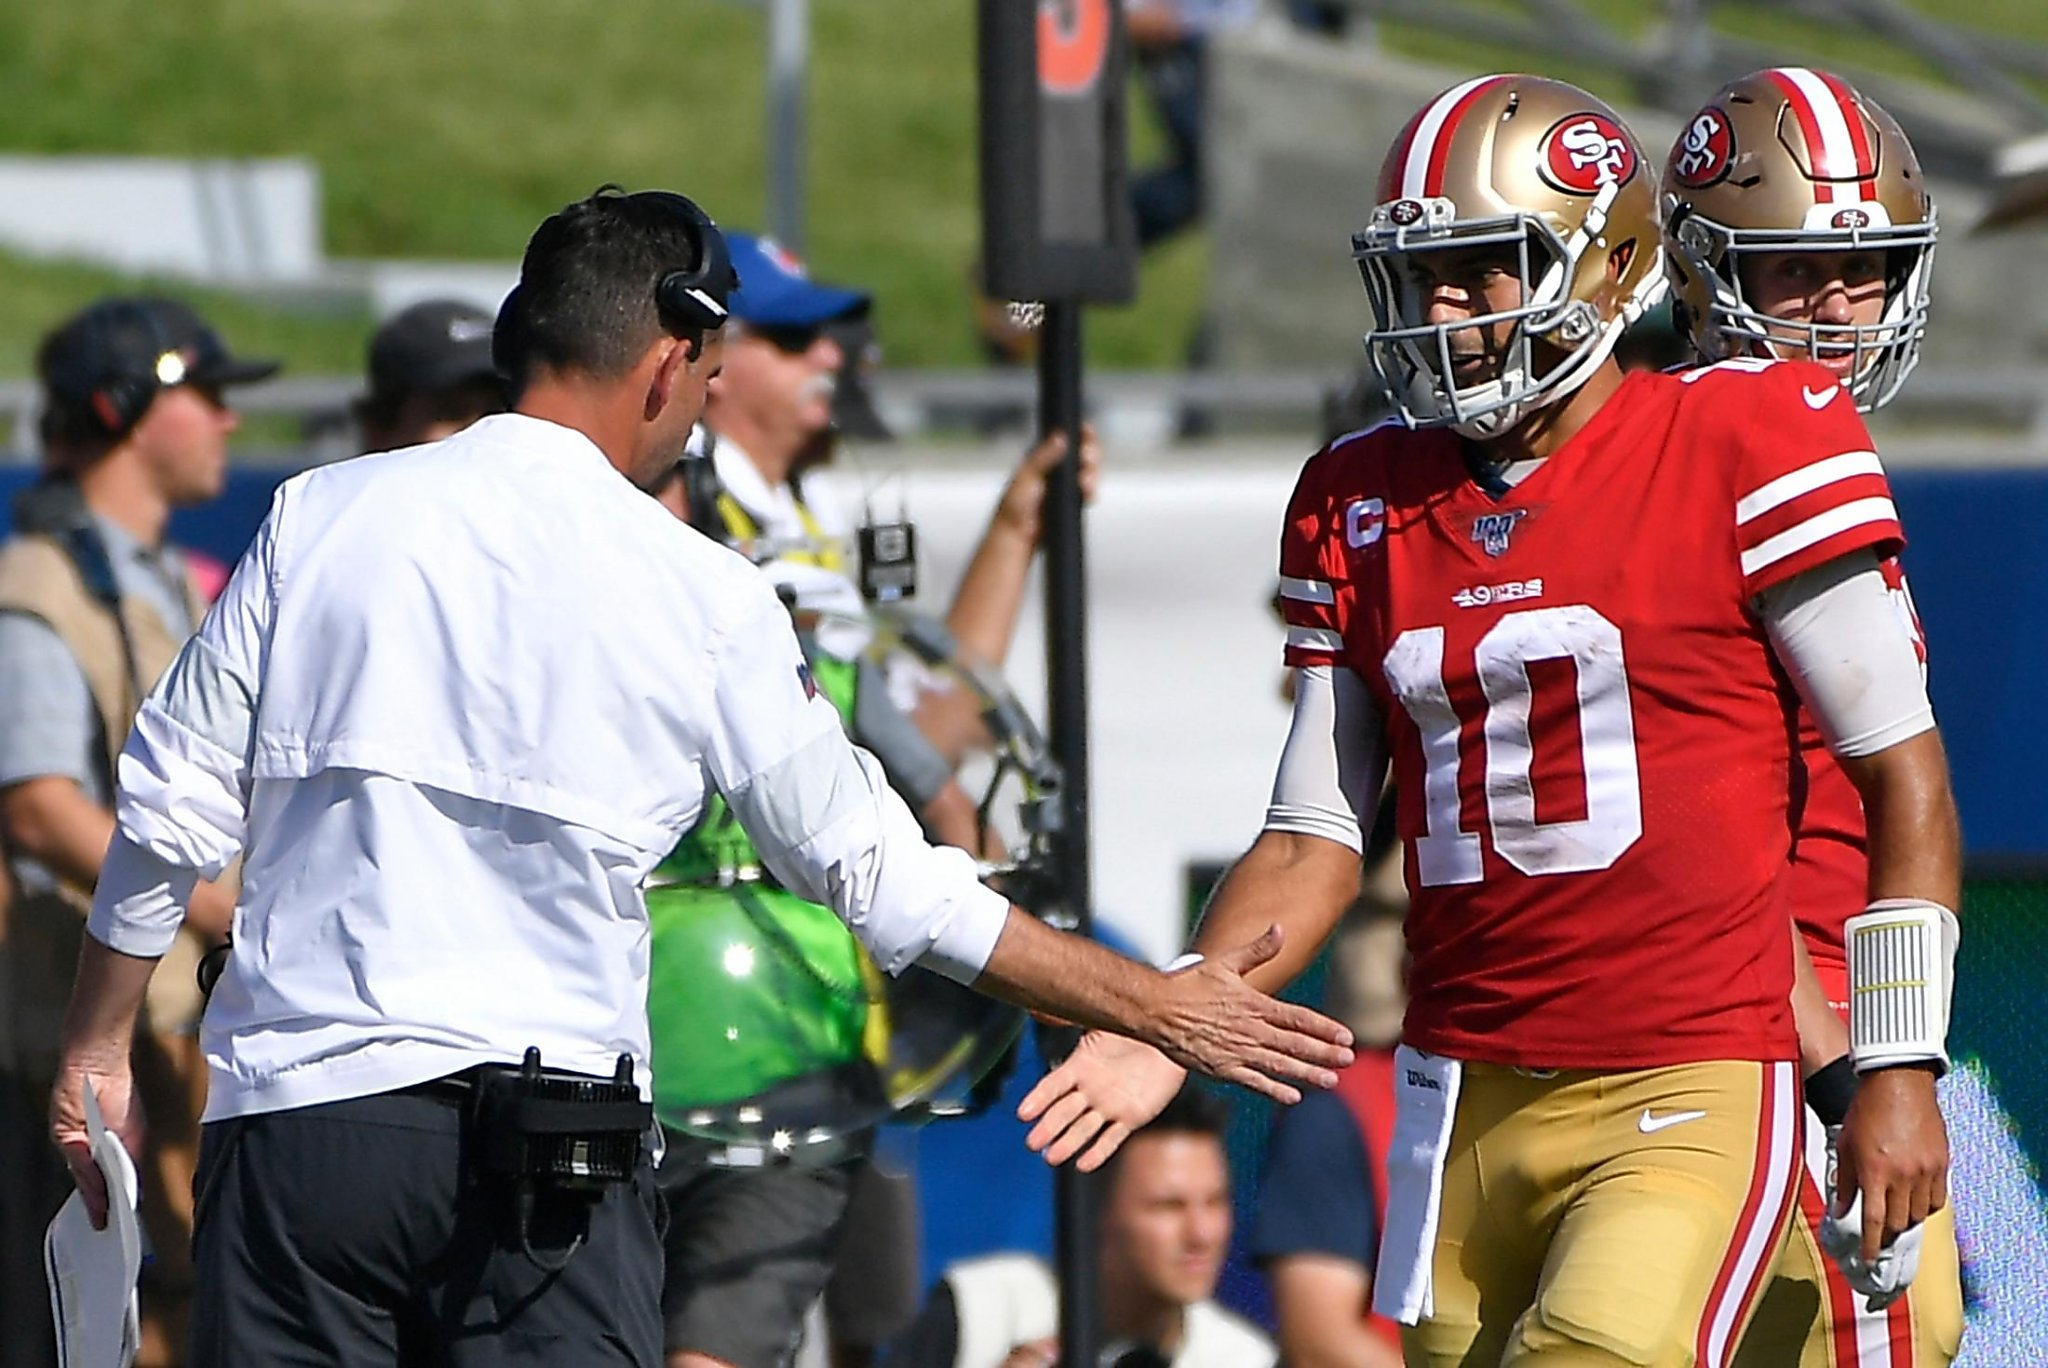 49ers' Shanahan: Jimmy Garoppolo's next step is 'understanding coverages'